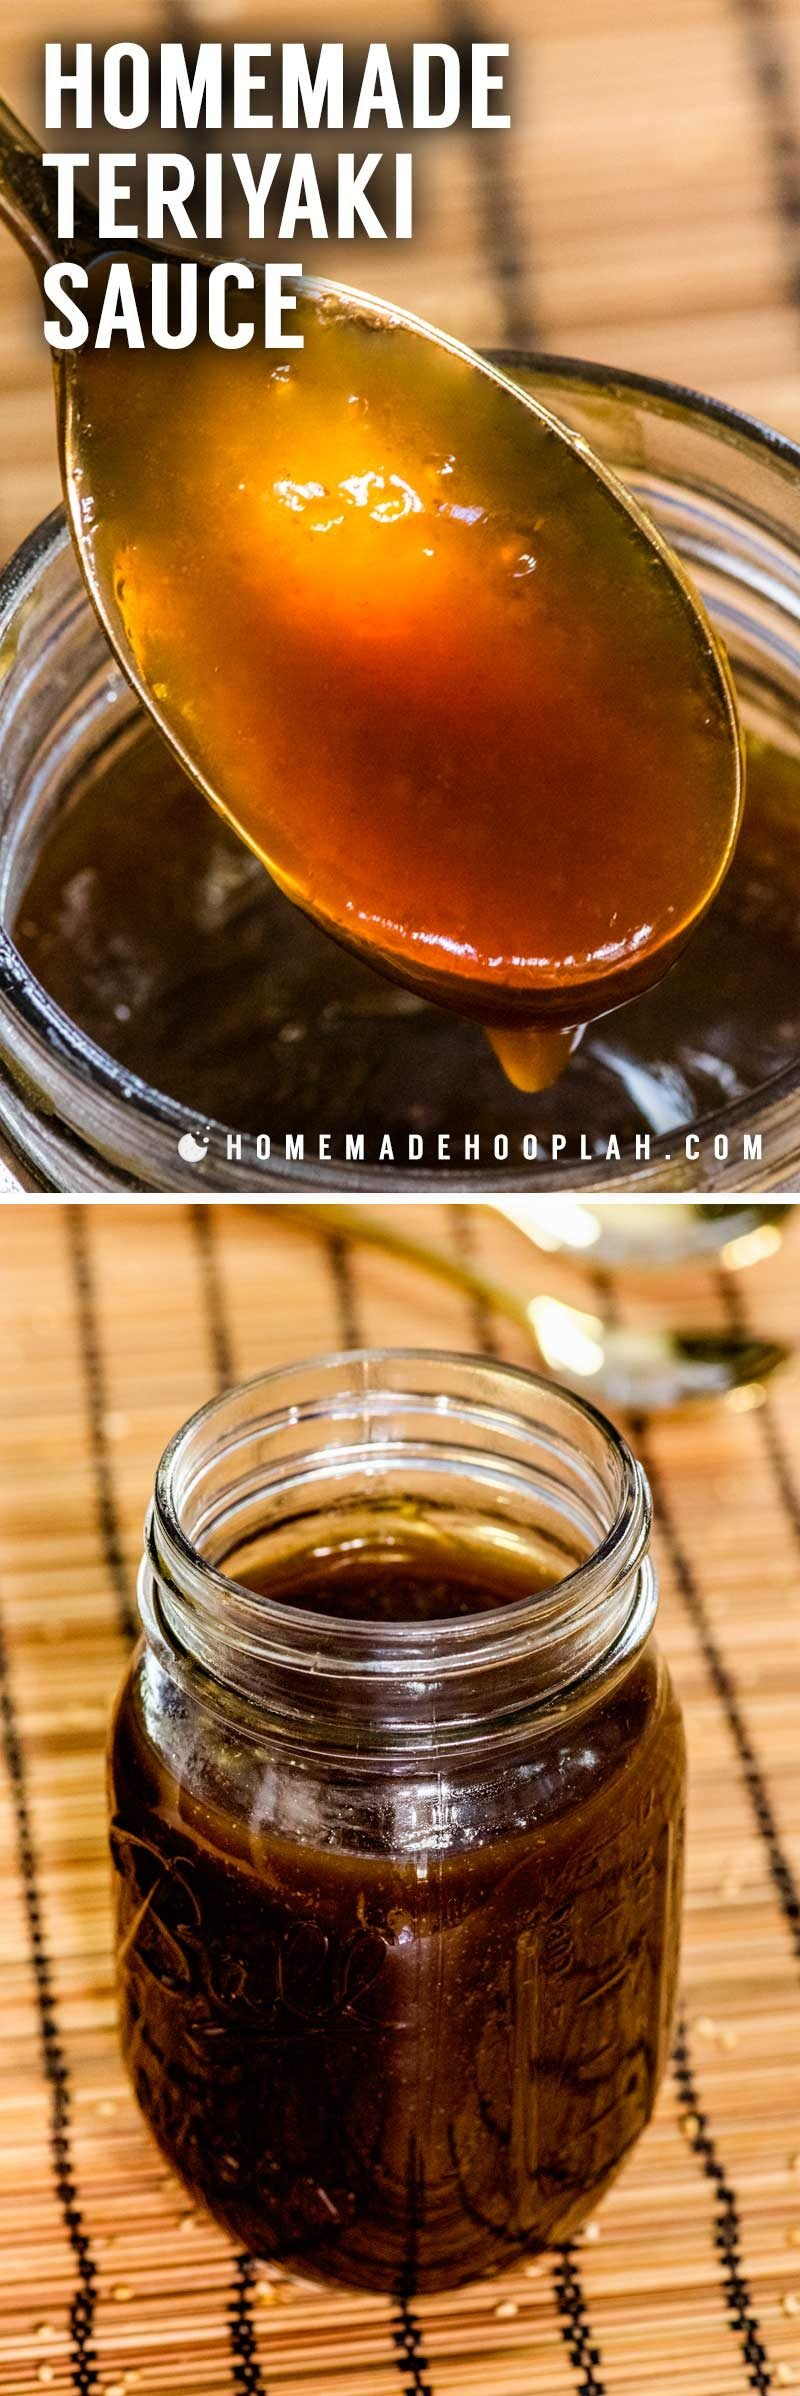 How to make teriyaki sauce from scratch.